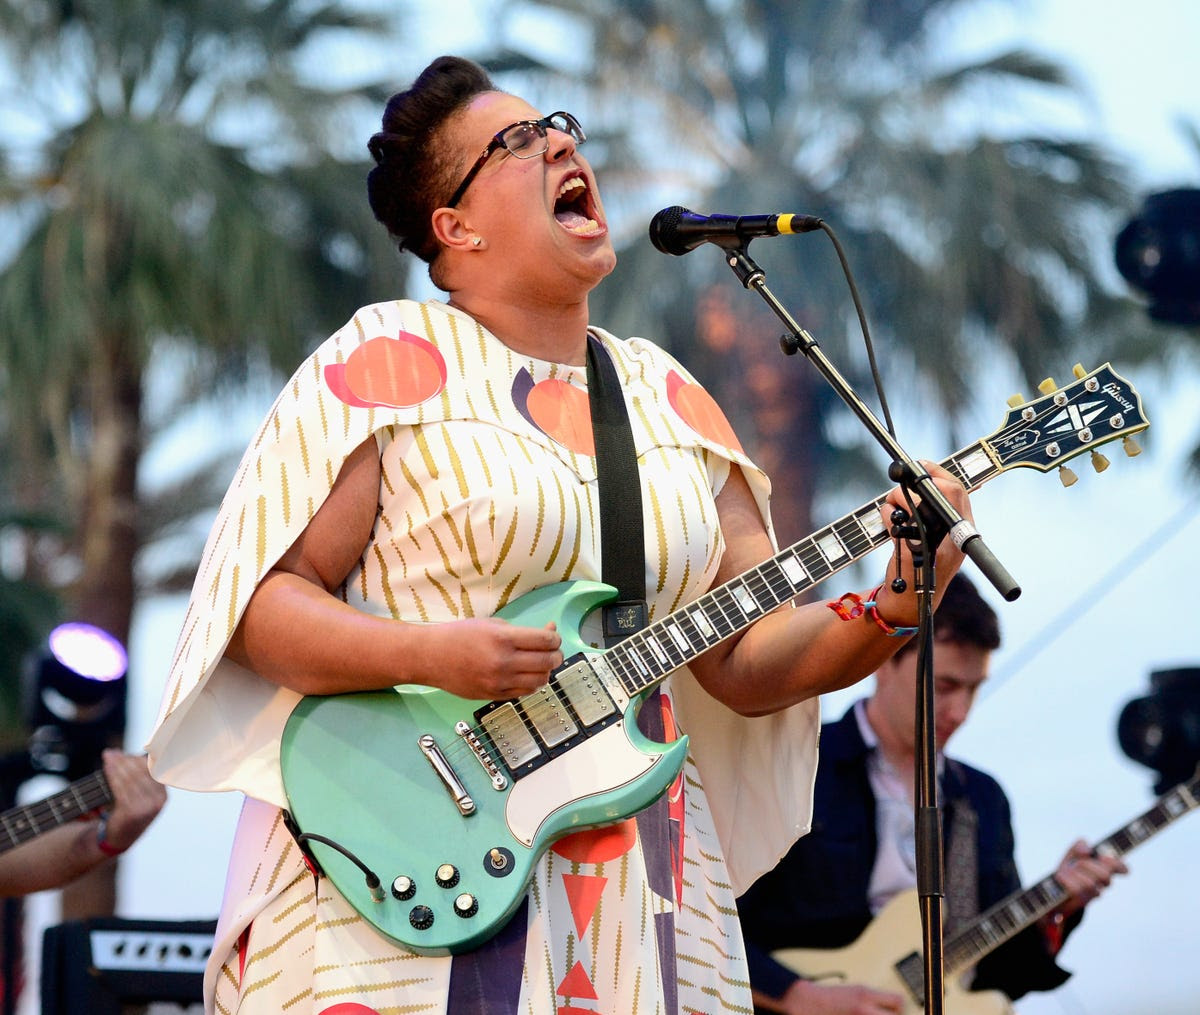 Brittany Howard of Alabama Shakes really gave it her all.